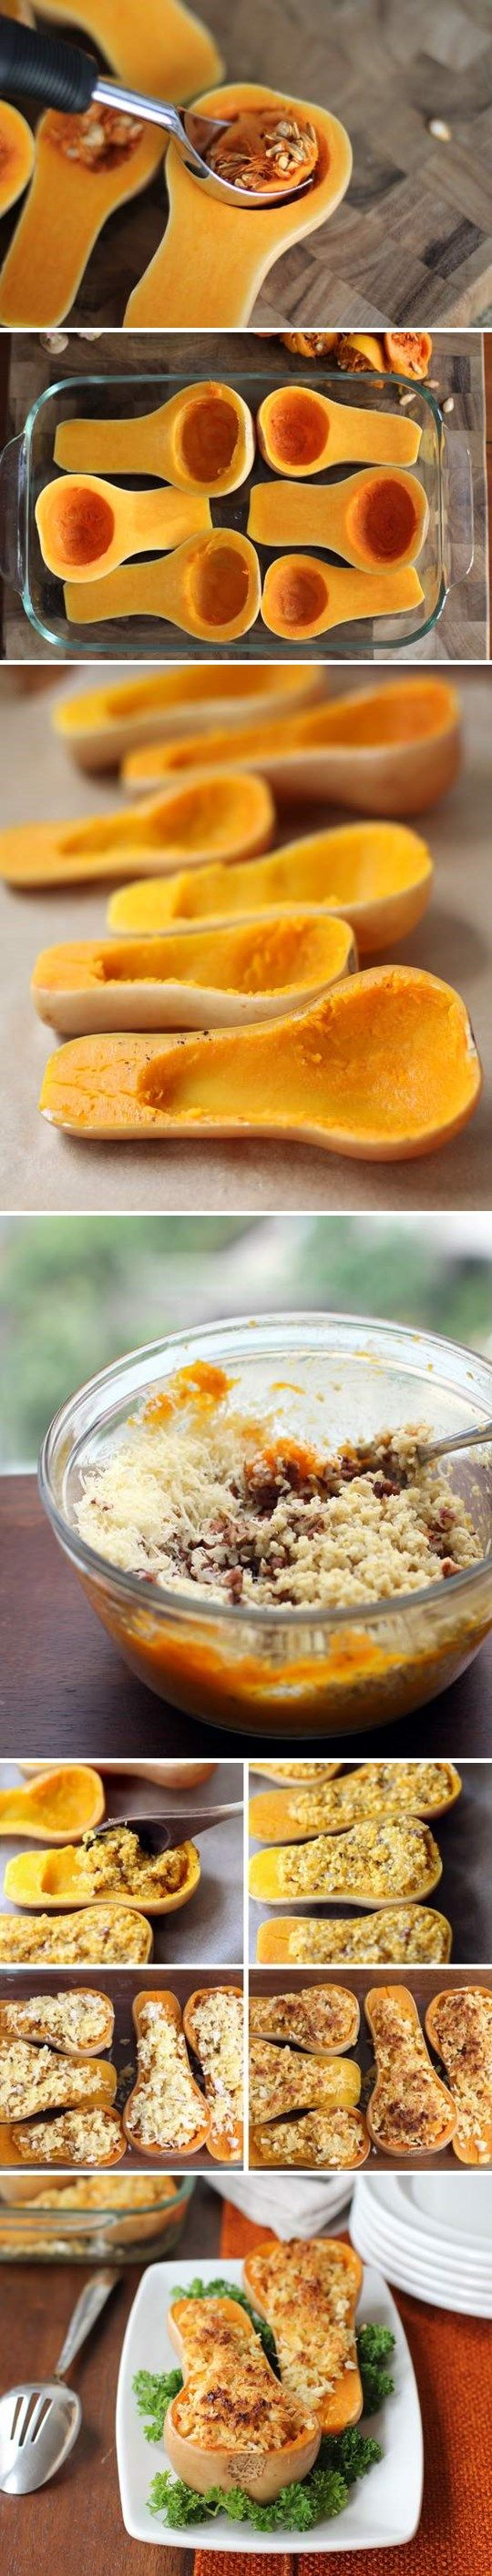 Twice-Baked Butternut Squash With Quinoa, Pecans & Parmesan